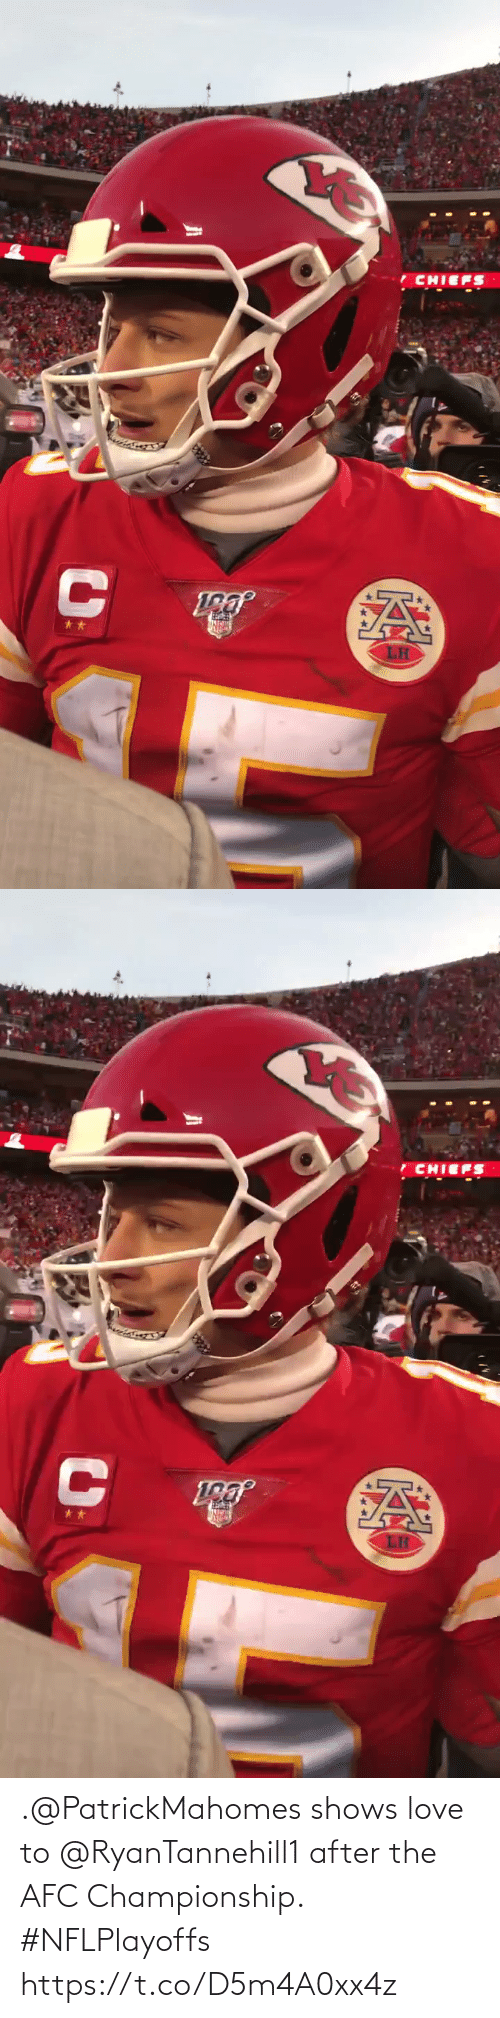 After: .@PatrickMahomes shows love to @RyanTannehill1 after the AFC Championship. #NFLPlayoffs https://t.co/D5m4A0xx4z